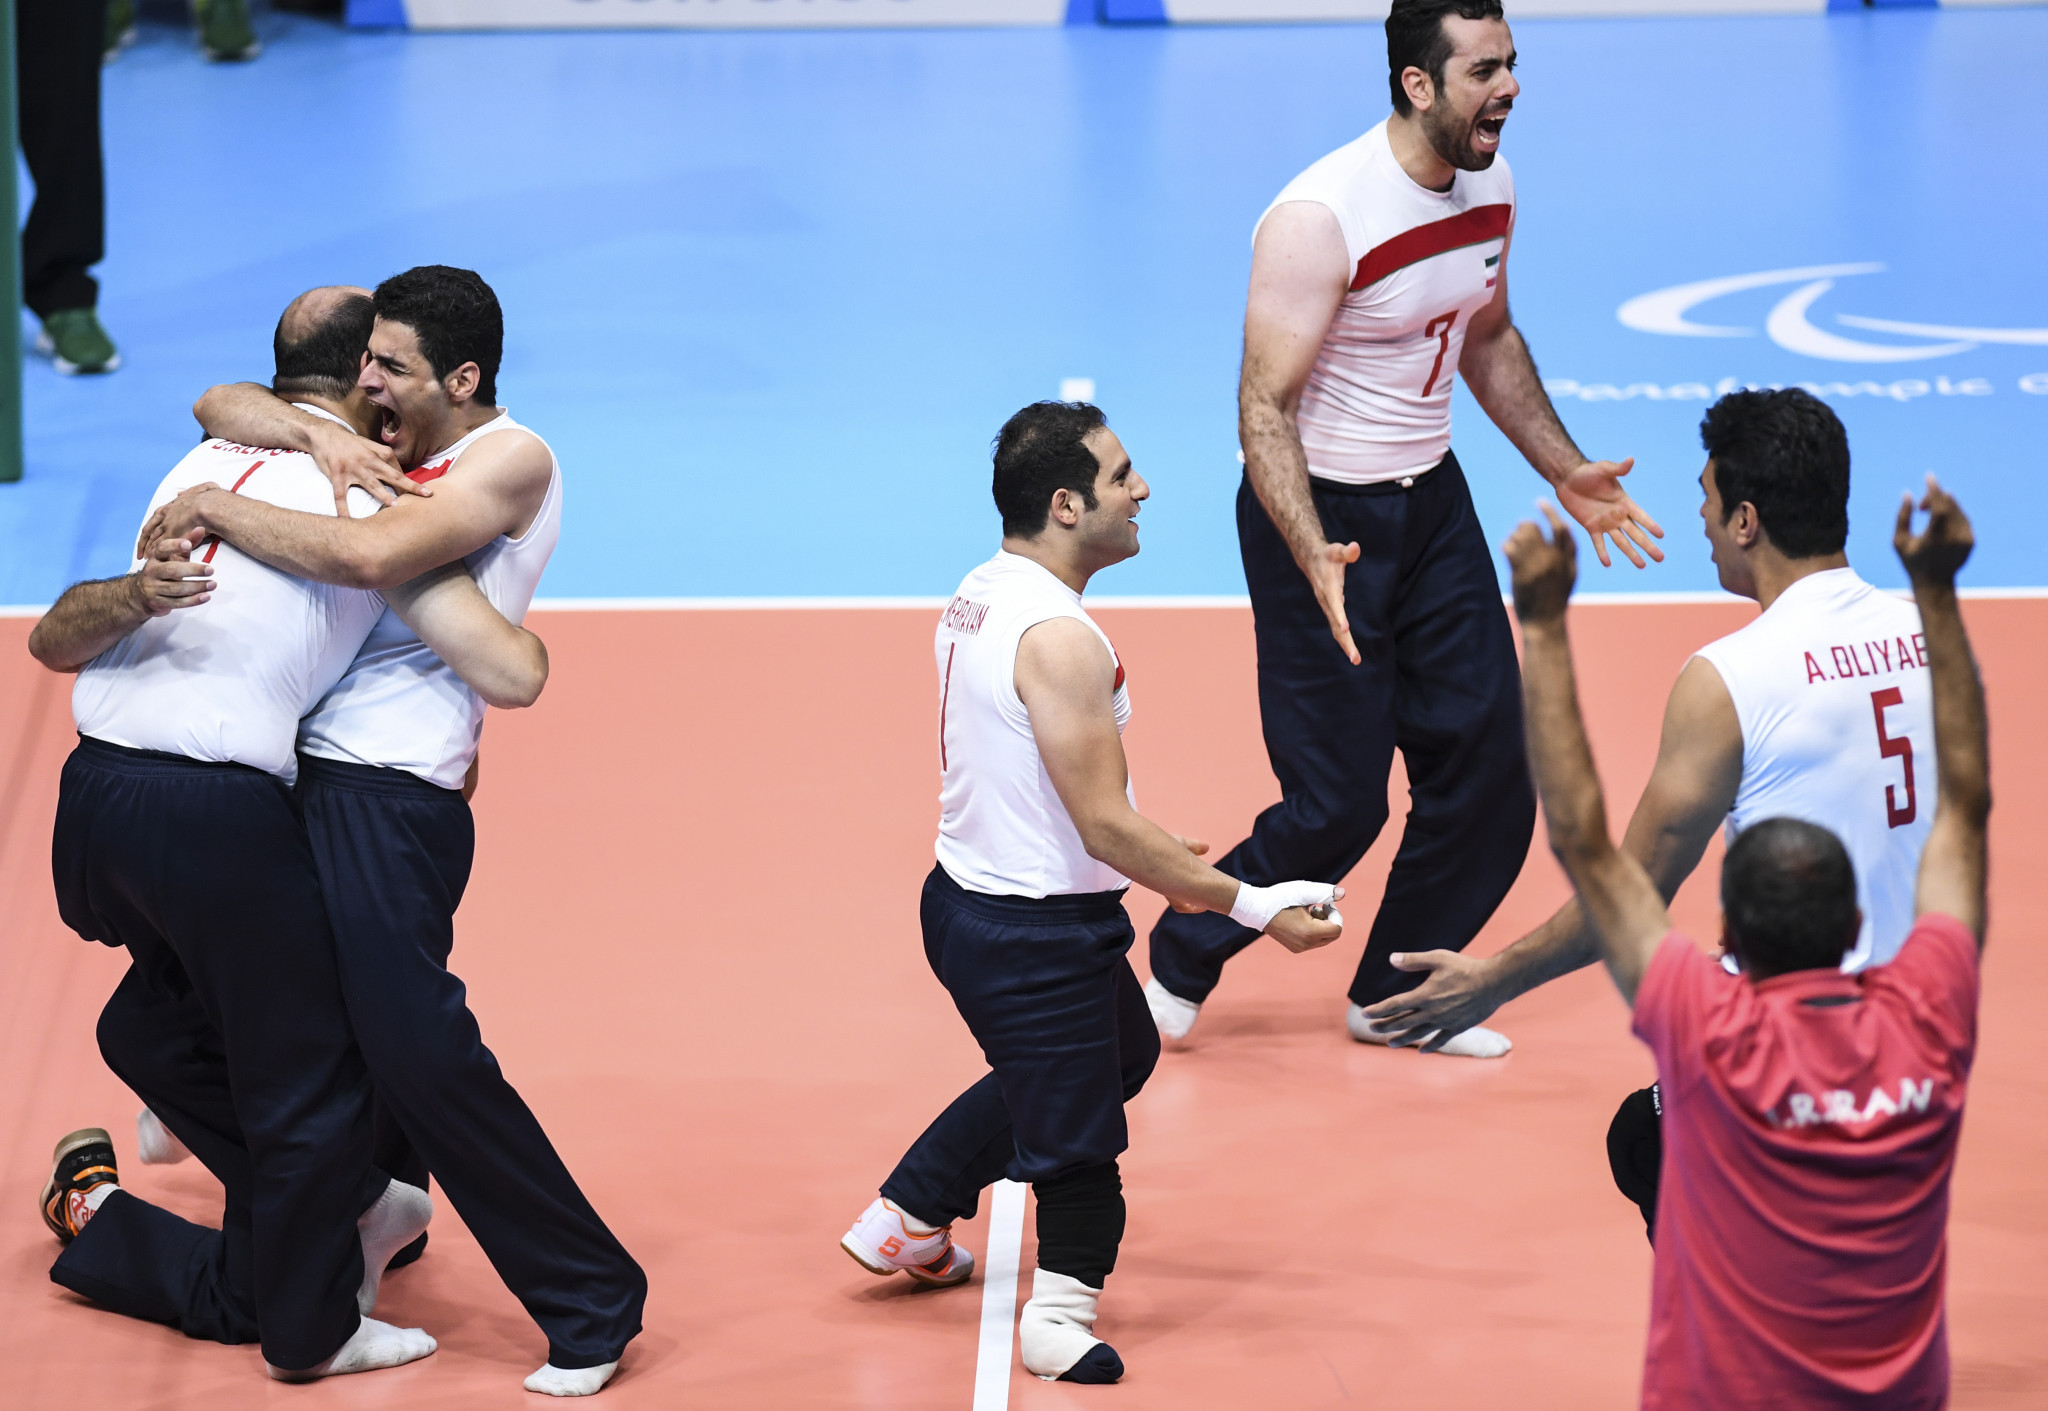 Iran have added the 2018 Sitting Volleyball World Championship title to their 2016 Paralympic win, beating Bosnia & Herzegovina at The Hague ©Getty Images